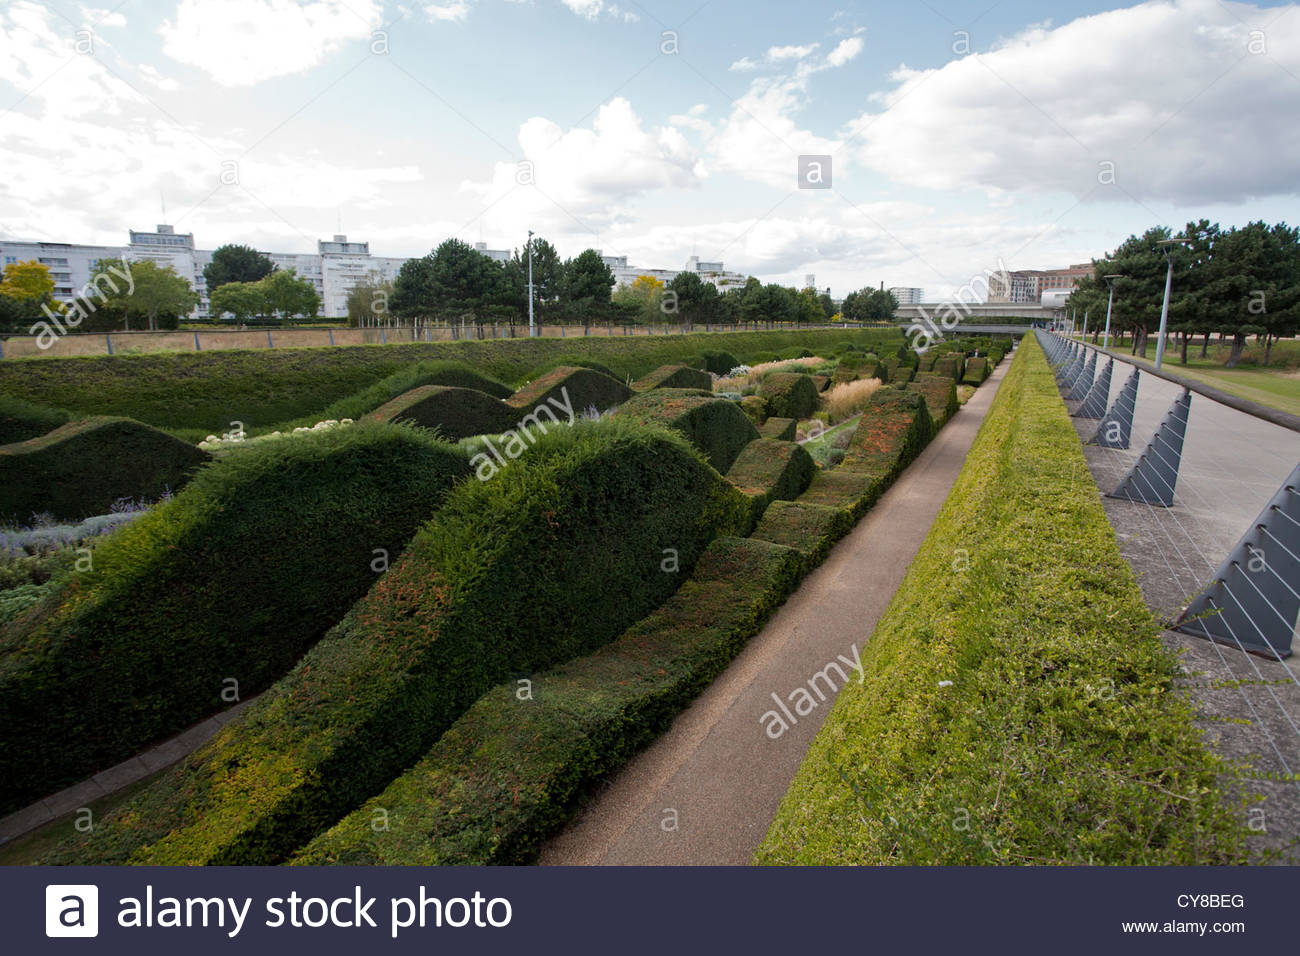 Thames Barrier Park, Silvertown, London. The park was opened in 1982 - Stock Image